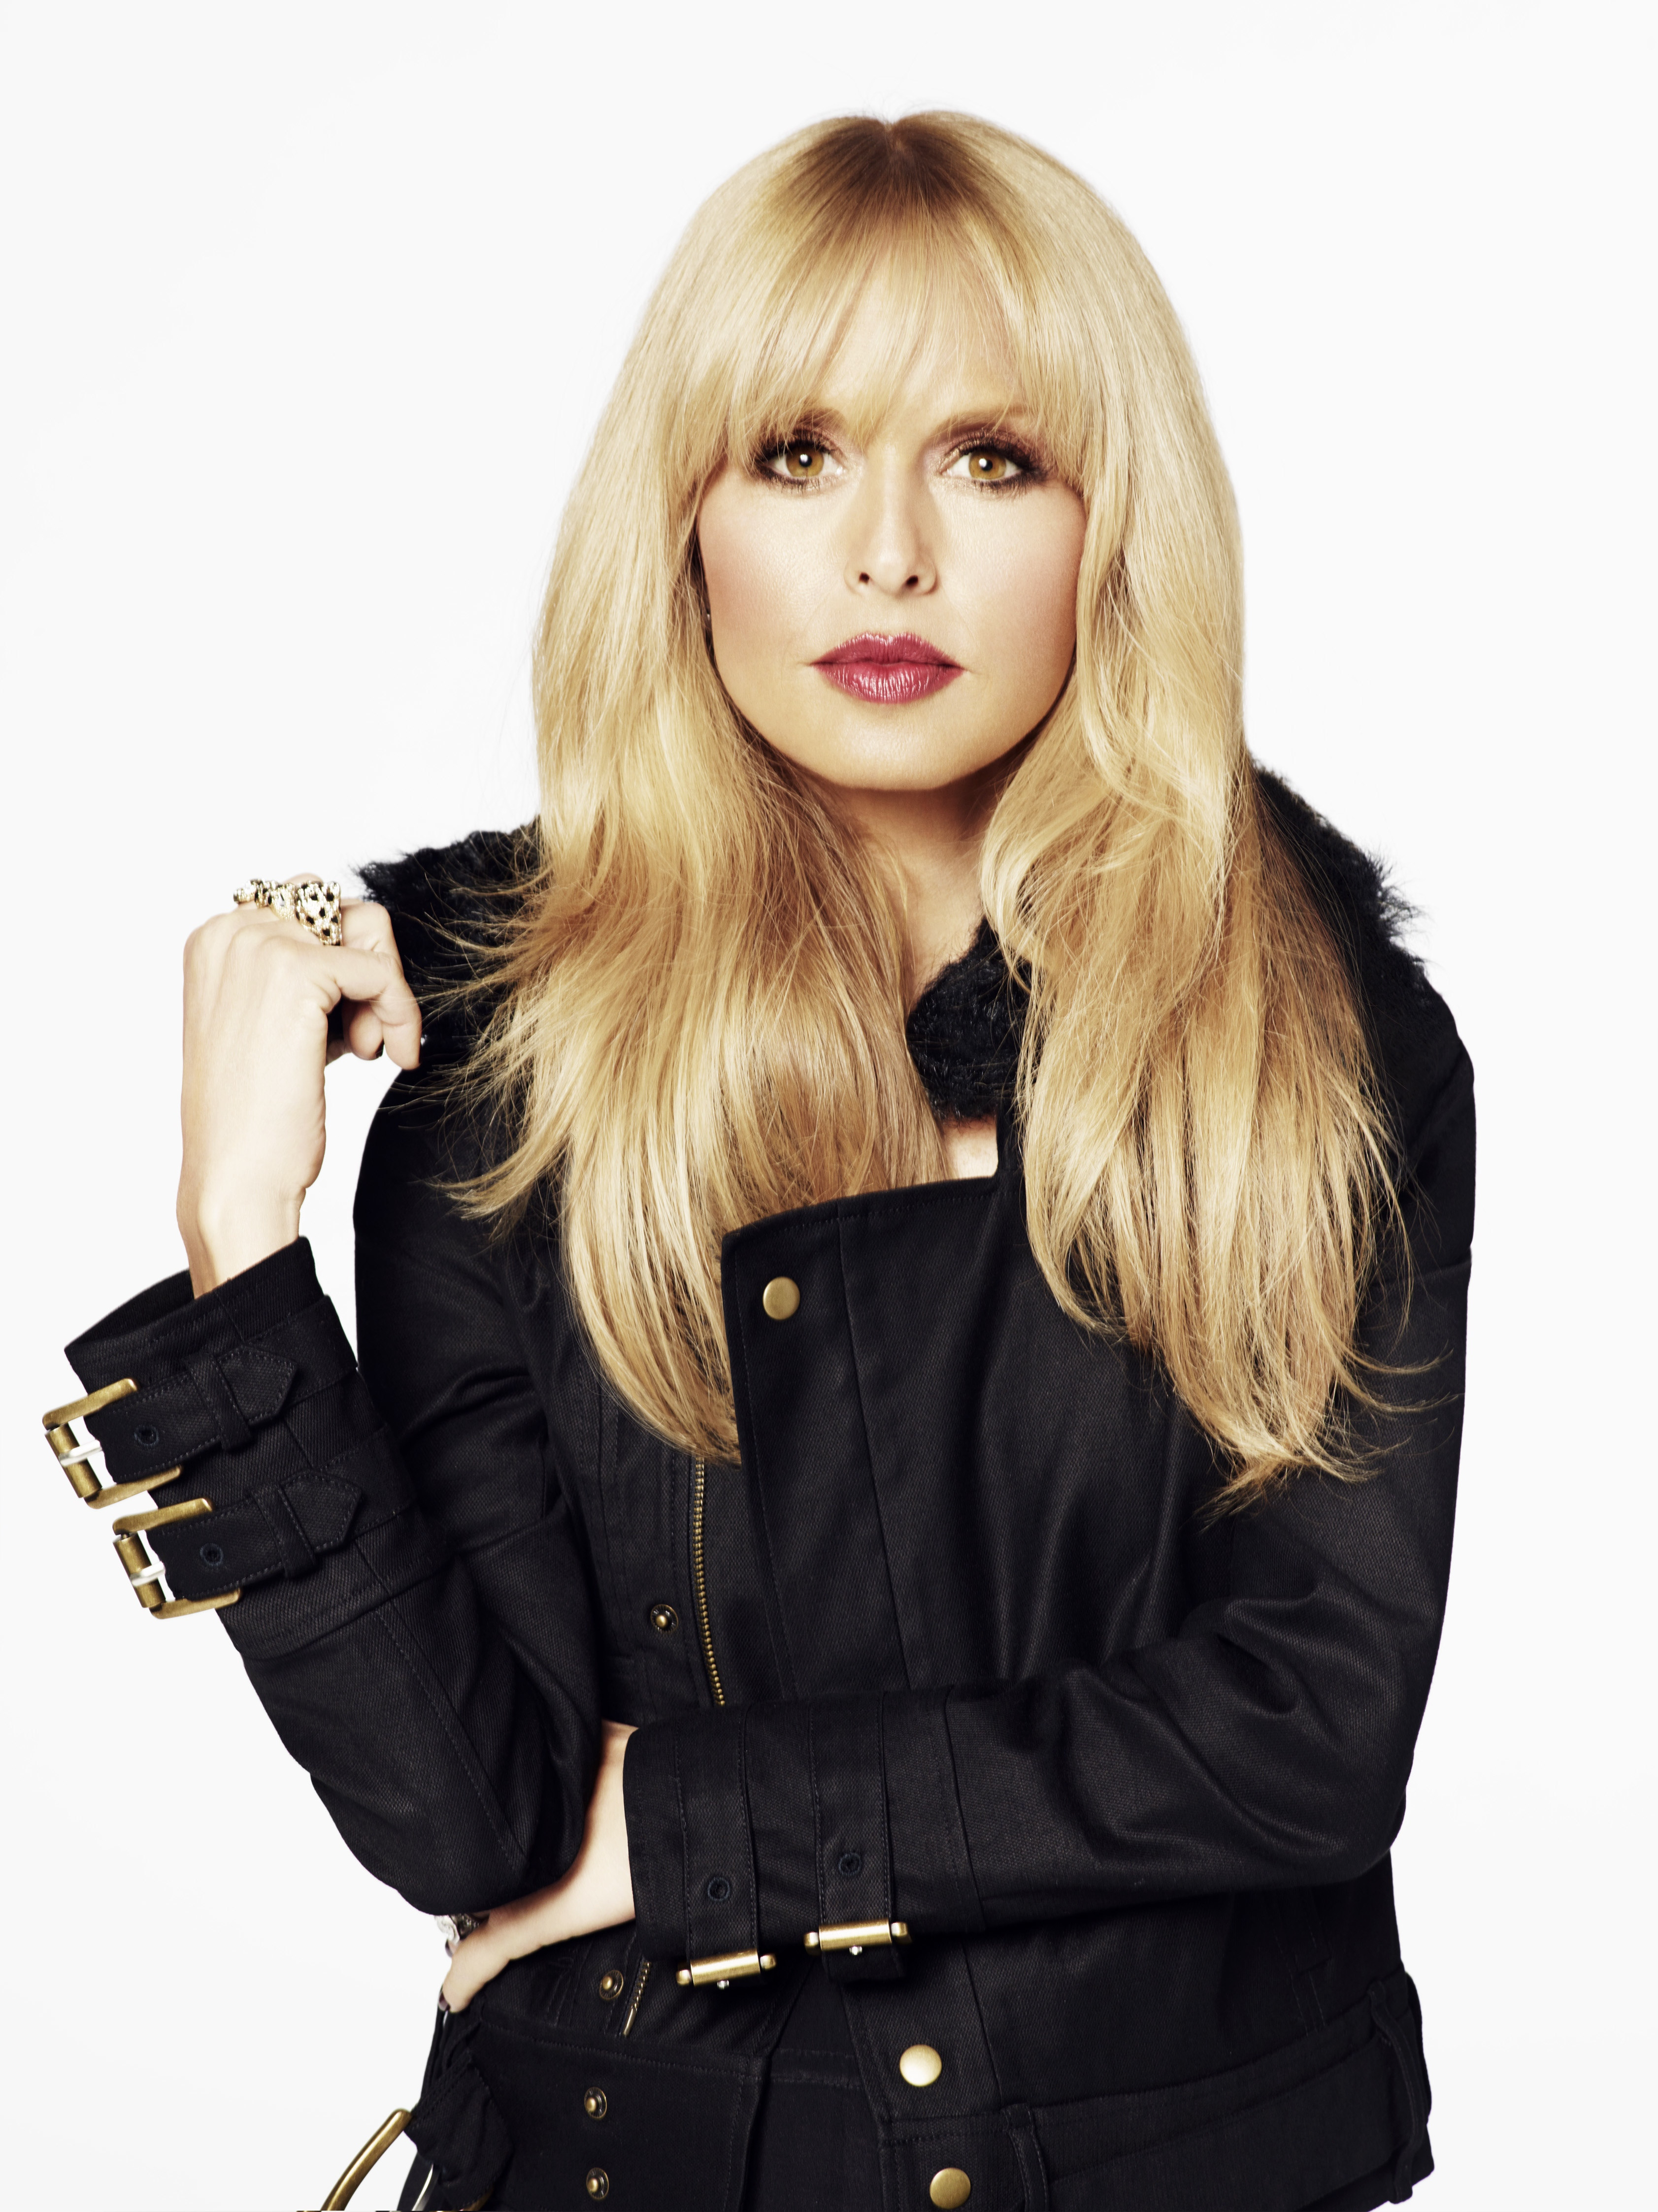 Rachel Zoe Wallpapers Images Photos Pictures Backgrounds